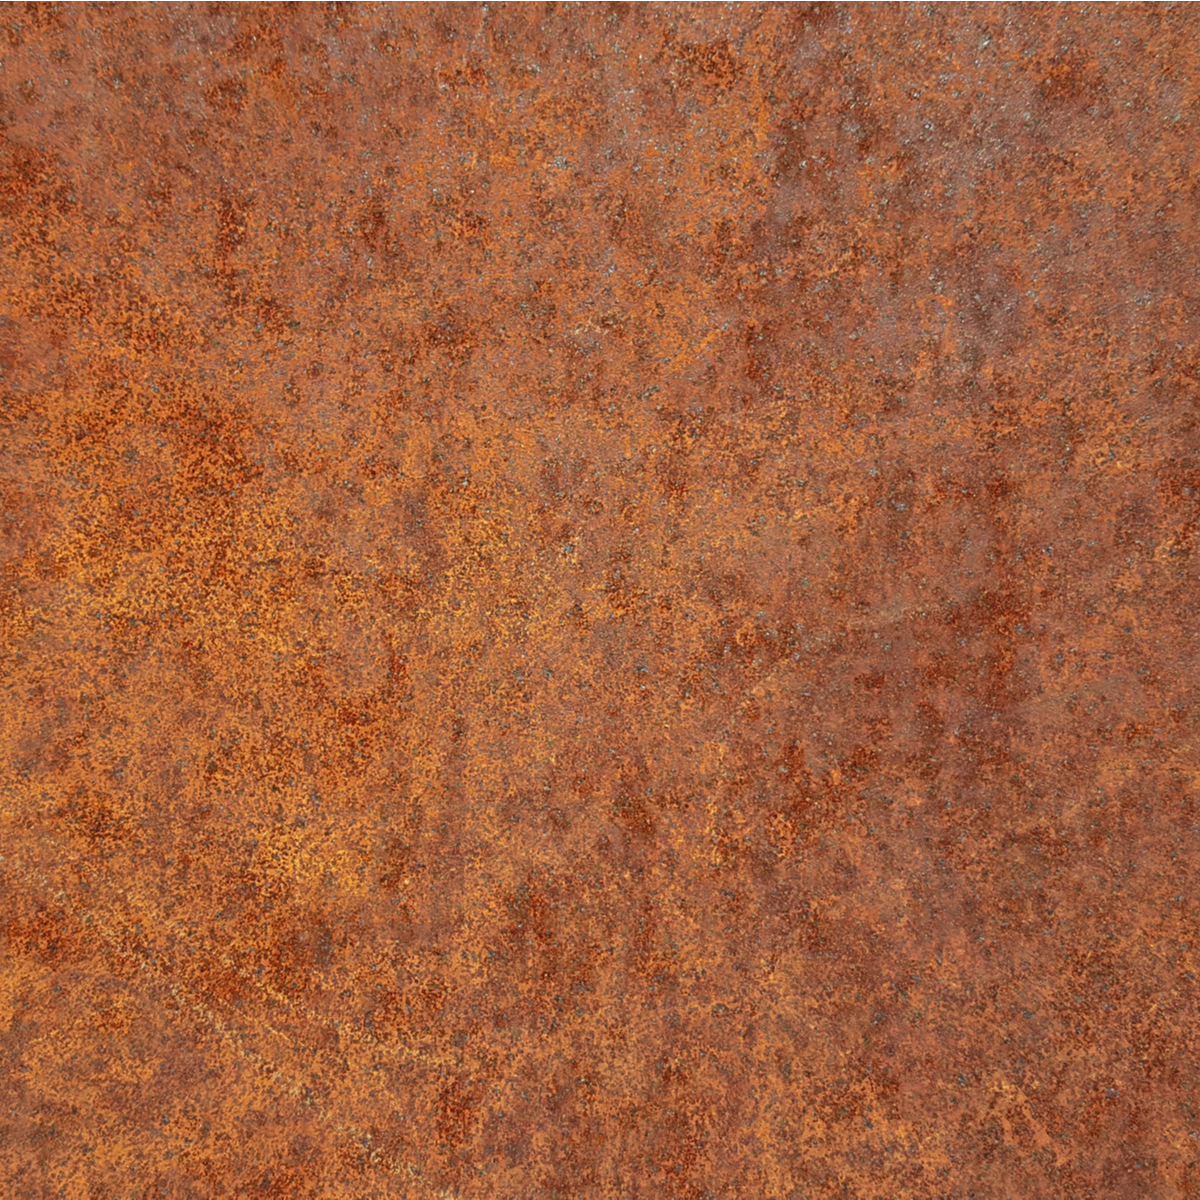 Corten Steel Sheet Industrial Metal Supply